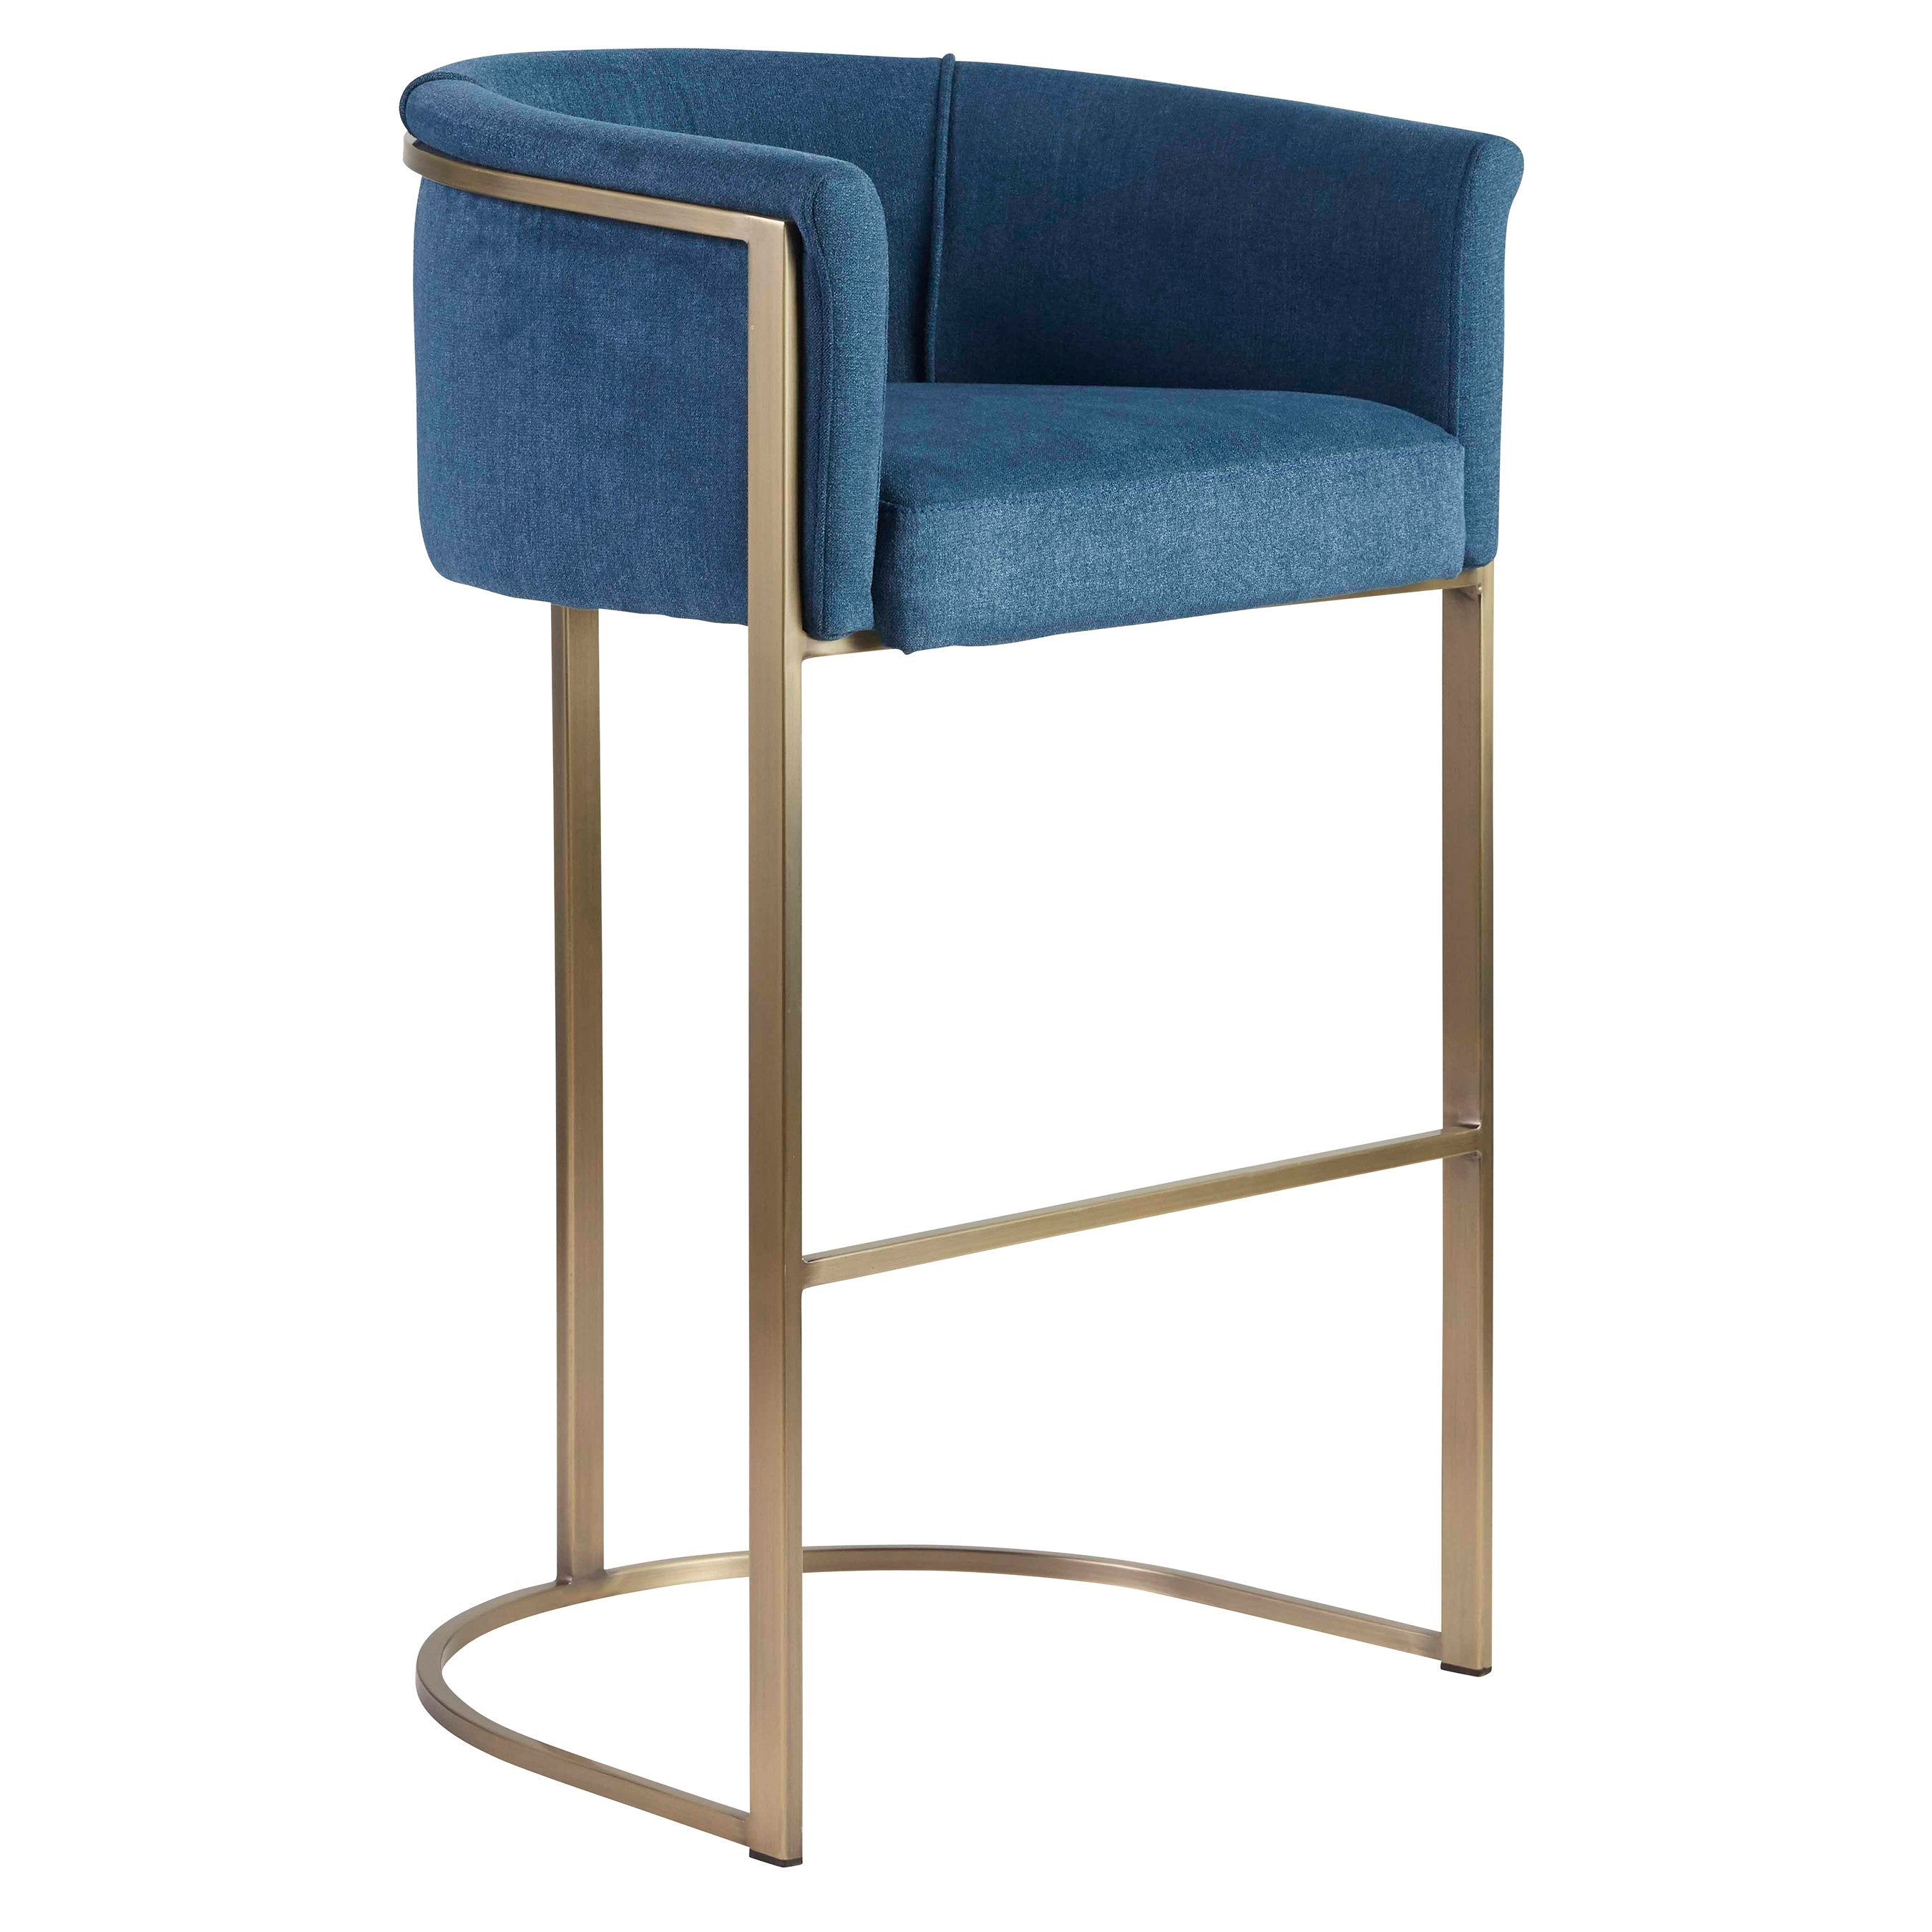 upholstered on wooden leather backs without wood bar grey navy homepop stool wayfair ideas pub with blue geo counter target chairs black kitchen home stools discount fabric brights gray padded goods and